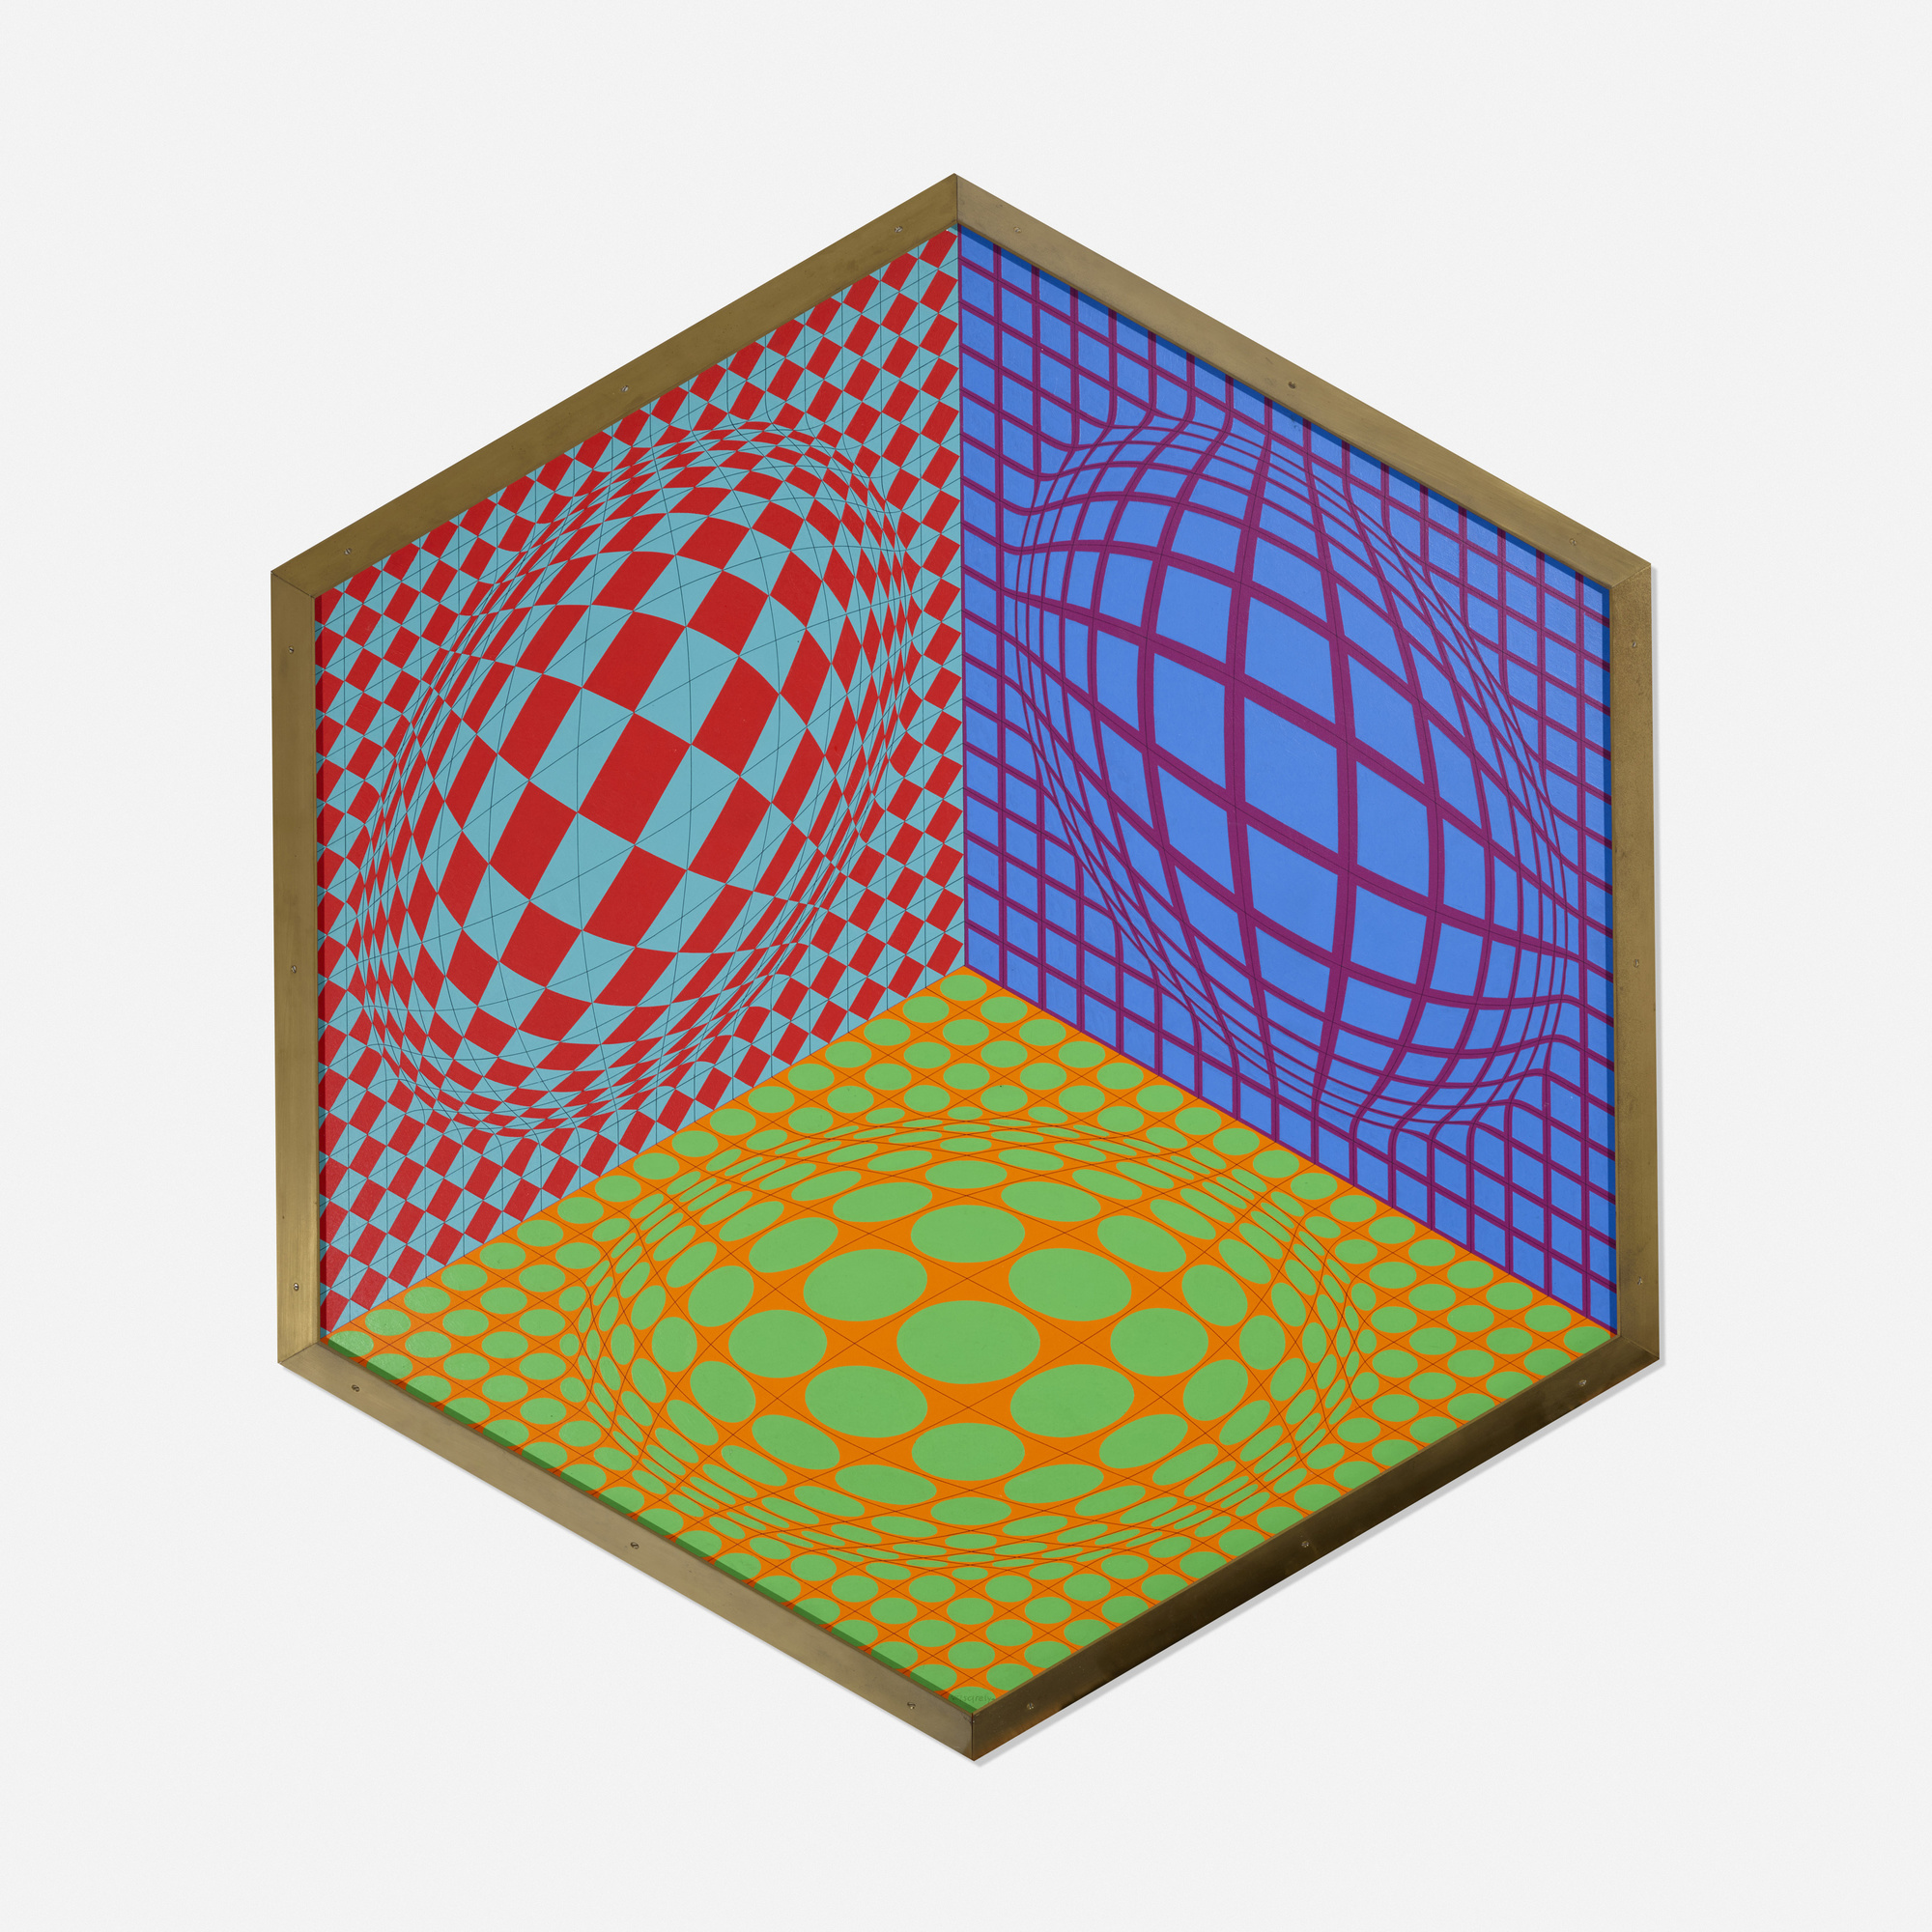 134: Victor Vasarely / Tri-Dagg (1 of 2)